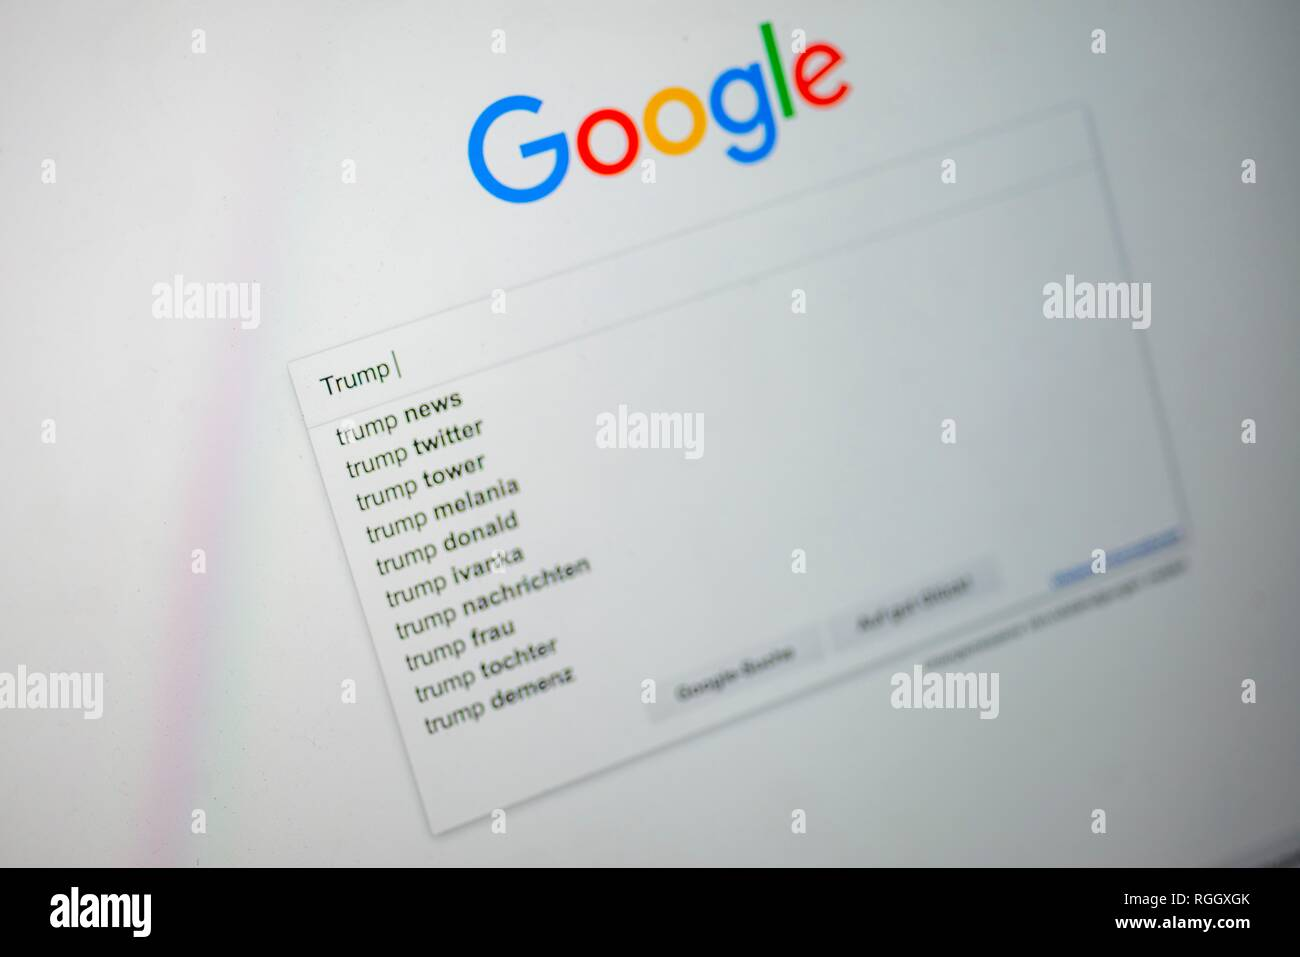 Google, home page with search entry Trump, search engine, Internet, screenshot, Germany - Stock Image